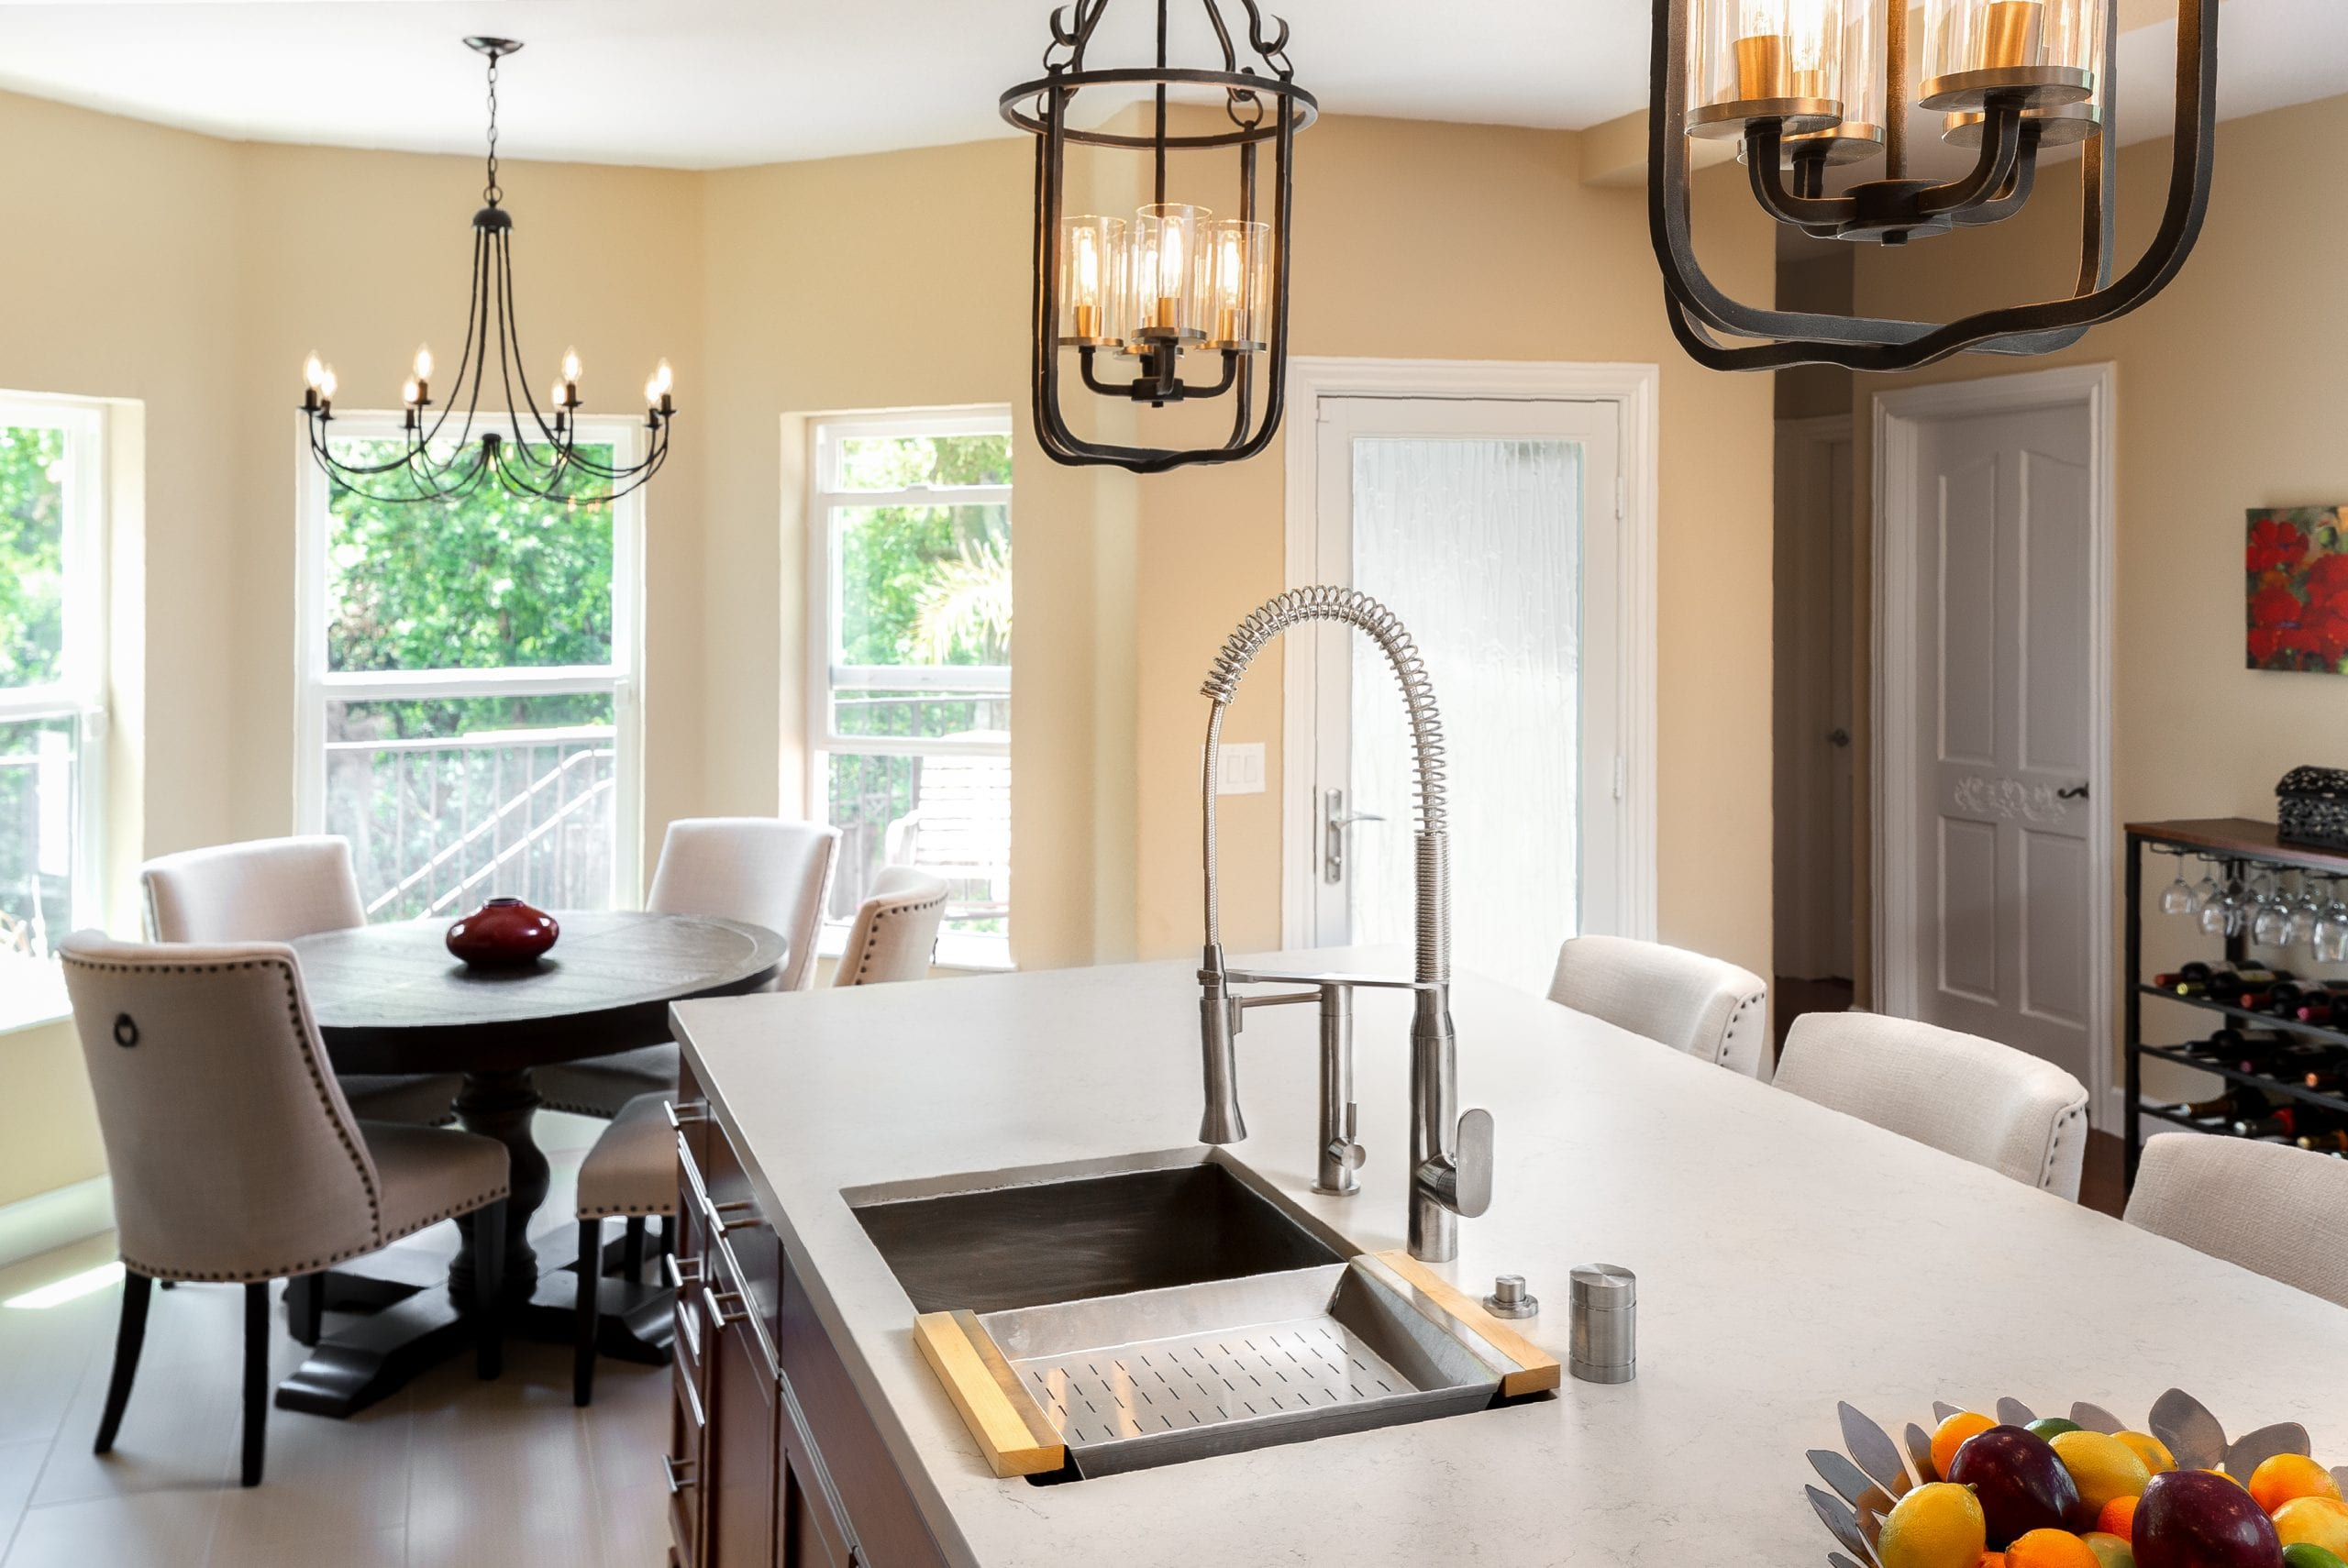 Stainless steel sink embedded into white marble countertop